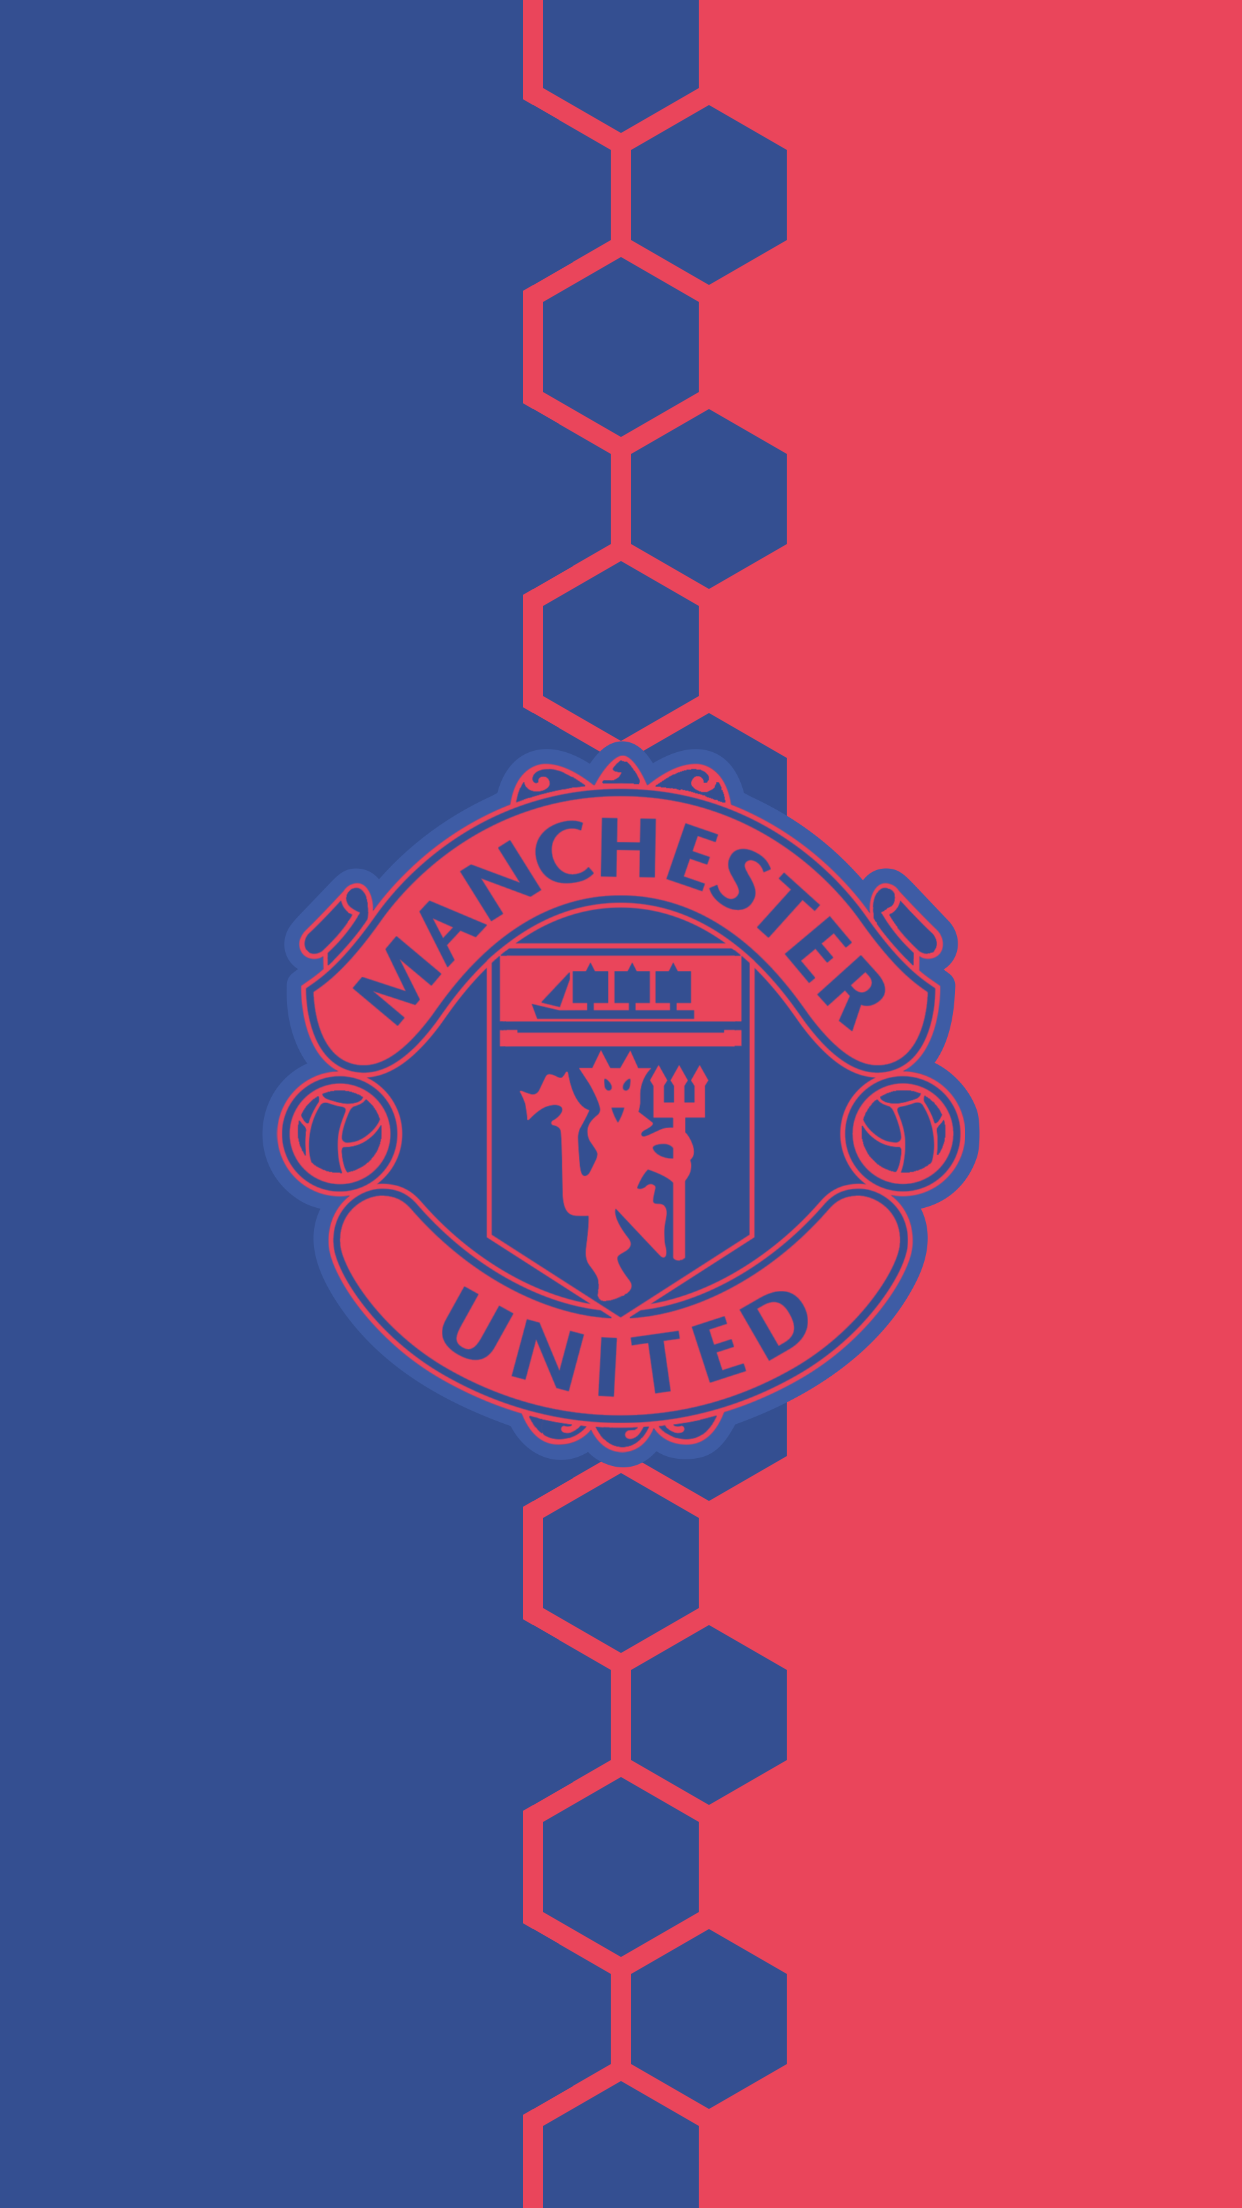 manchester united wallpaper football players manchester united football football wallpaper man united premier league basil hd wallpaper soccer